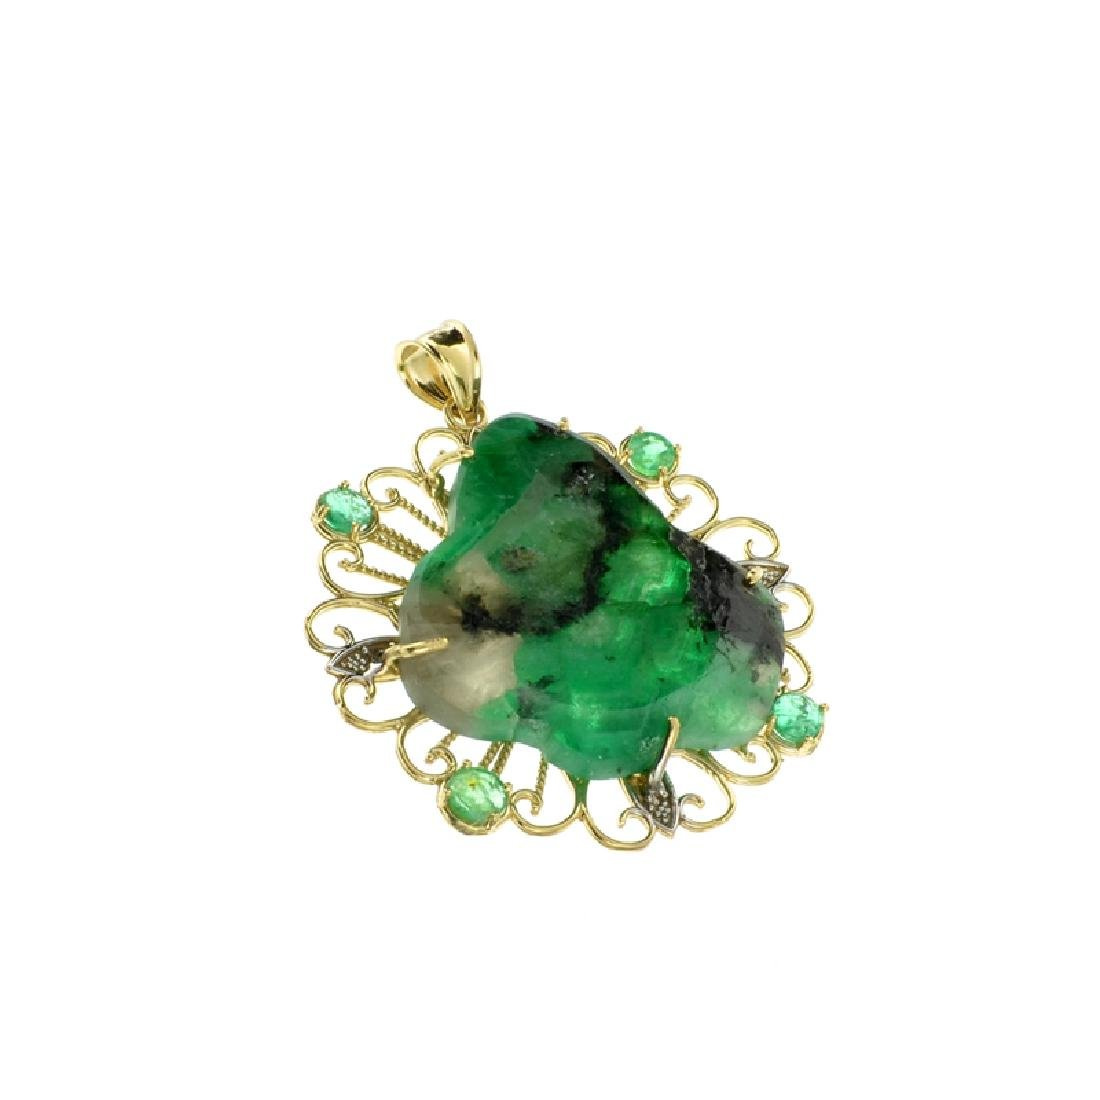 Fine Jewelry 14KT Gold, 17.80CT Rare Natural Form Green